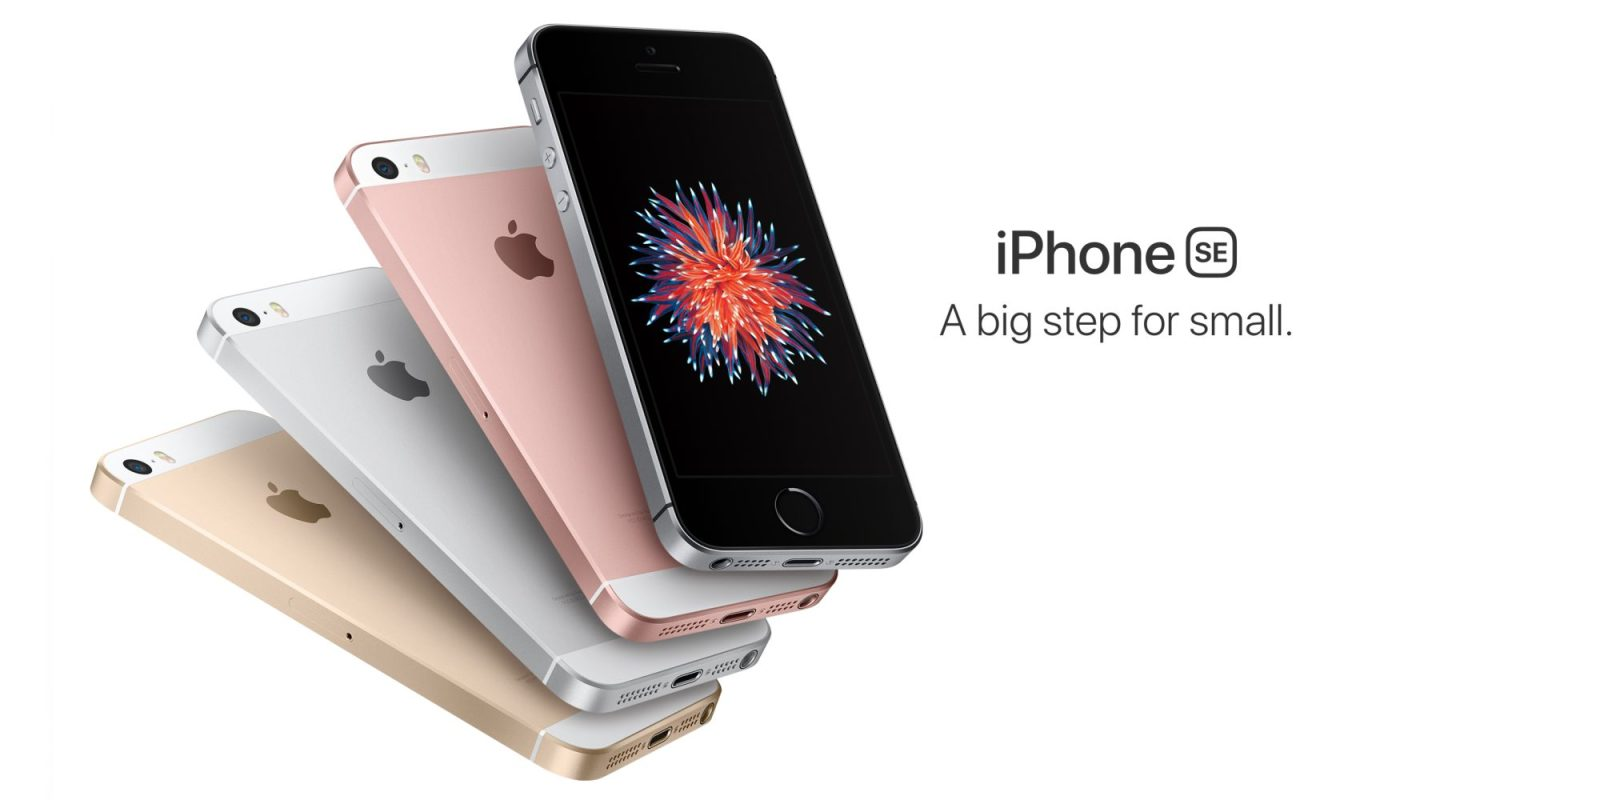 Apple has started production of iPhone SE in India, shipping to customers later in May